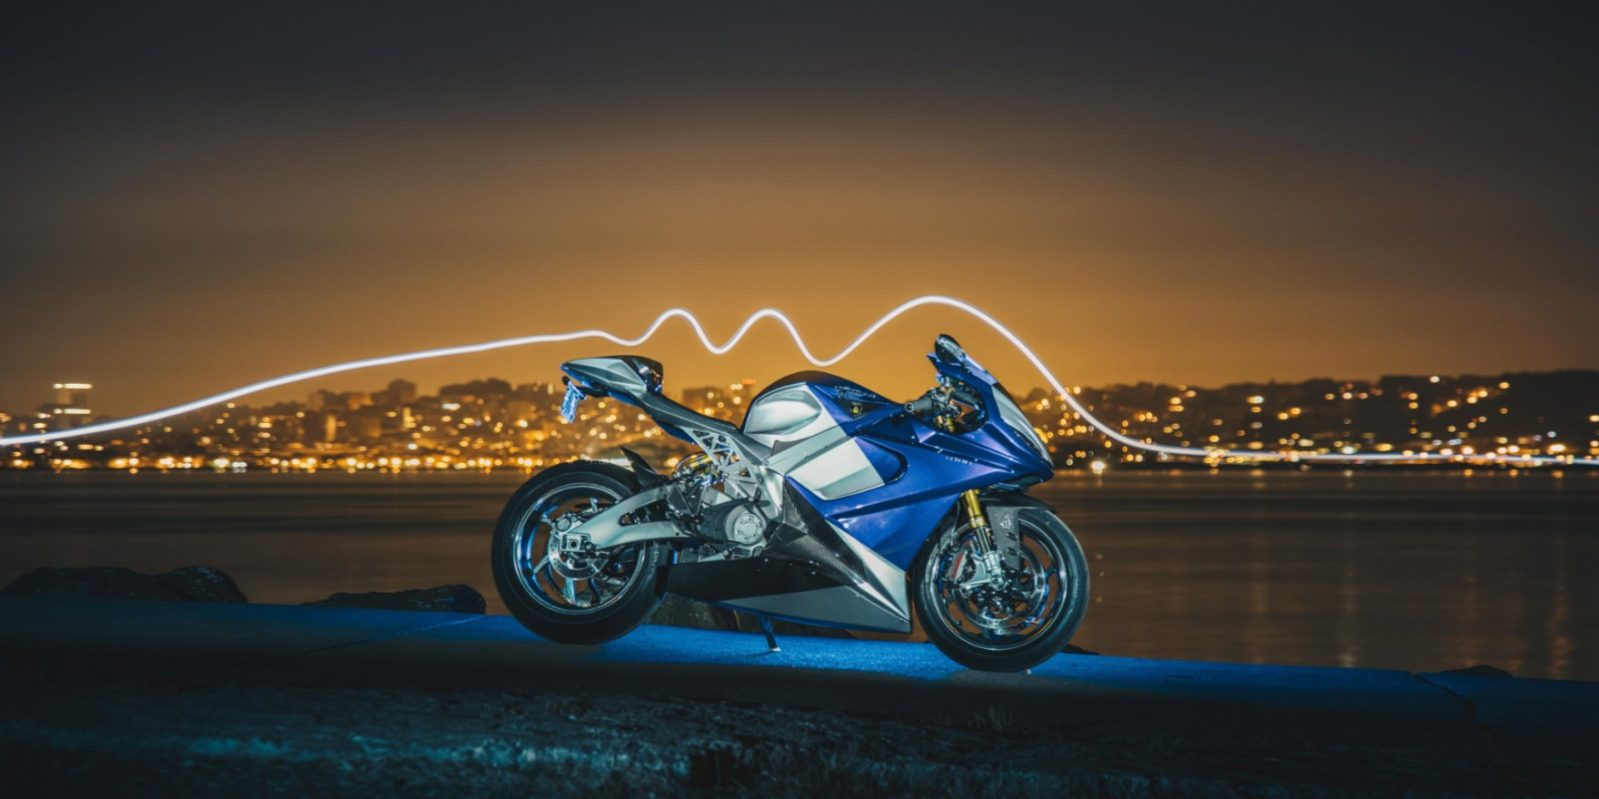 LS-218 electric motorcycle accelerates from 100-150 mph in 2